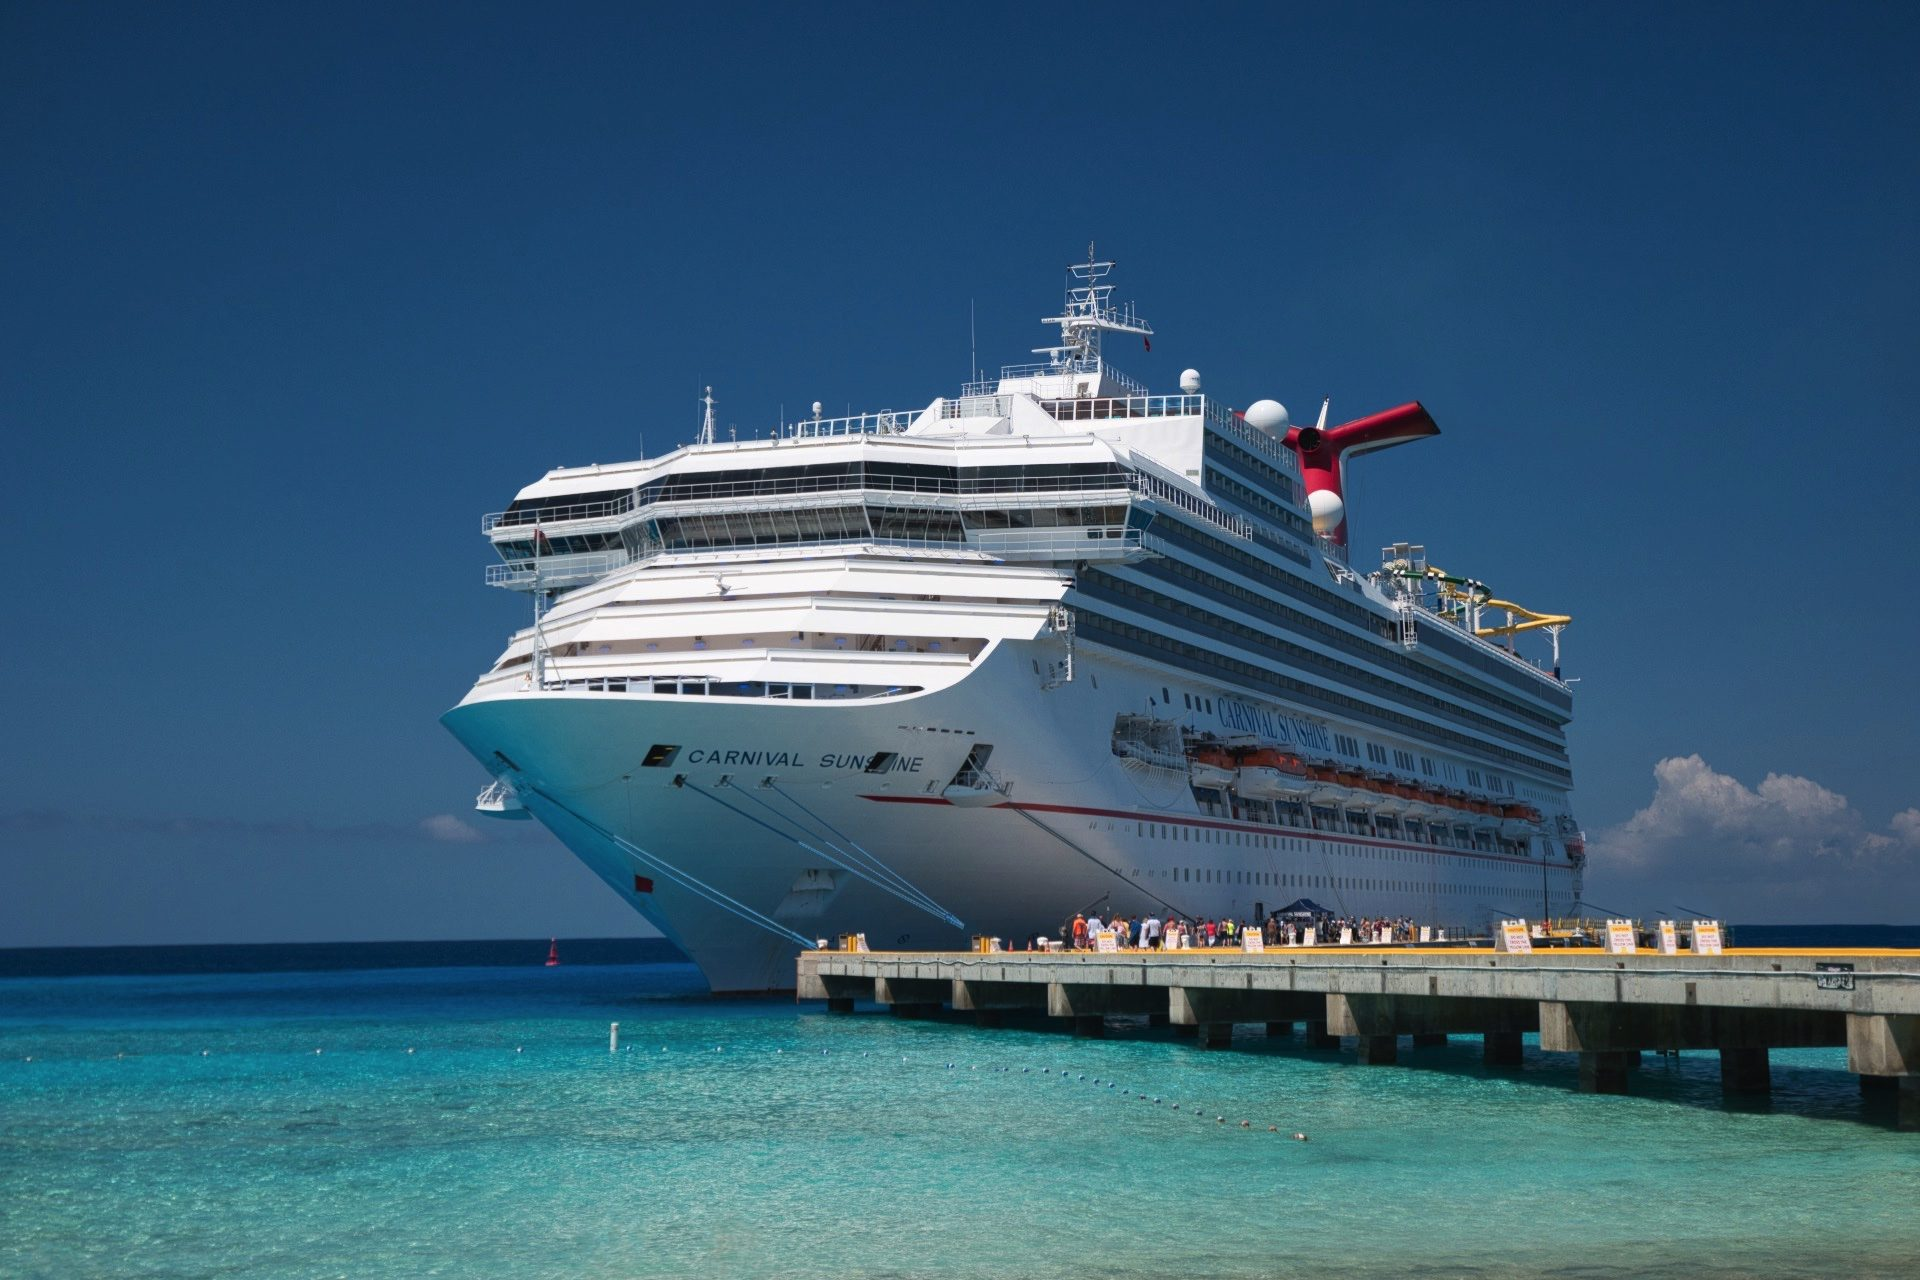 Carnival Sunshine Review – A family travel review of their 9-day eastern Caribbean cruise from Port Canaveral, FL